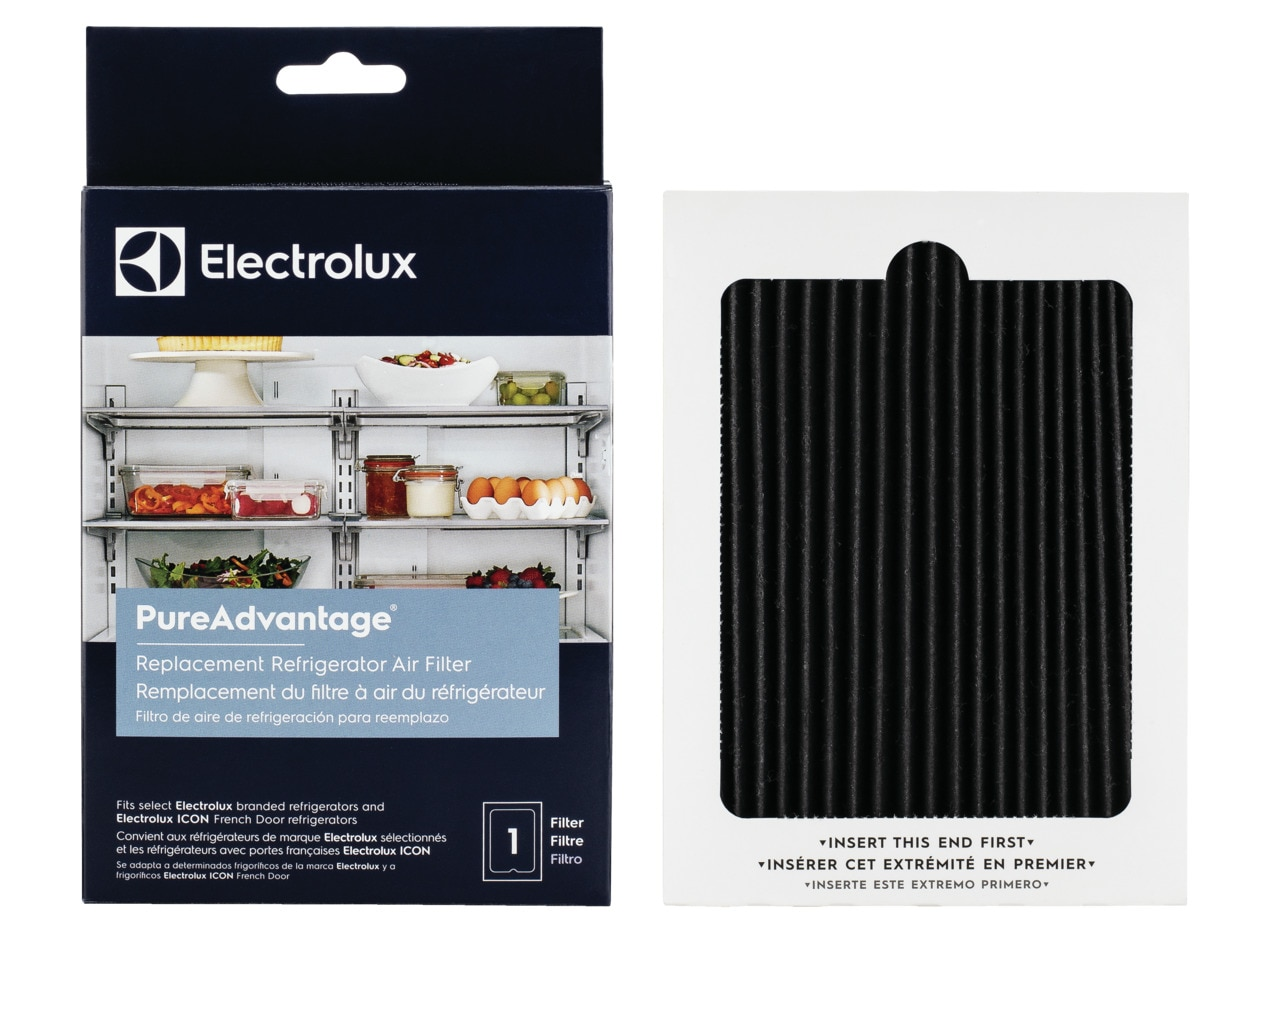 Electrolux Electrolux PureAdvantage® Air Filter